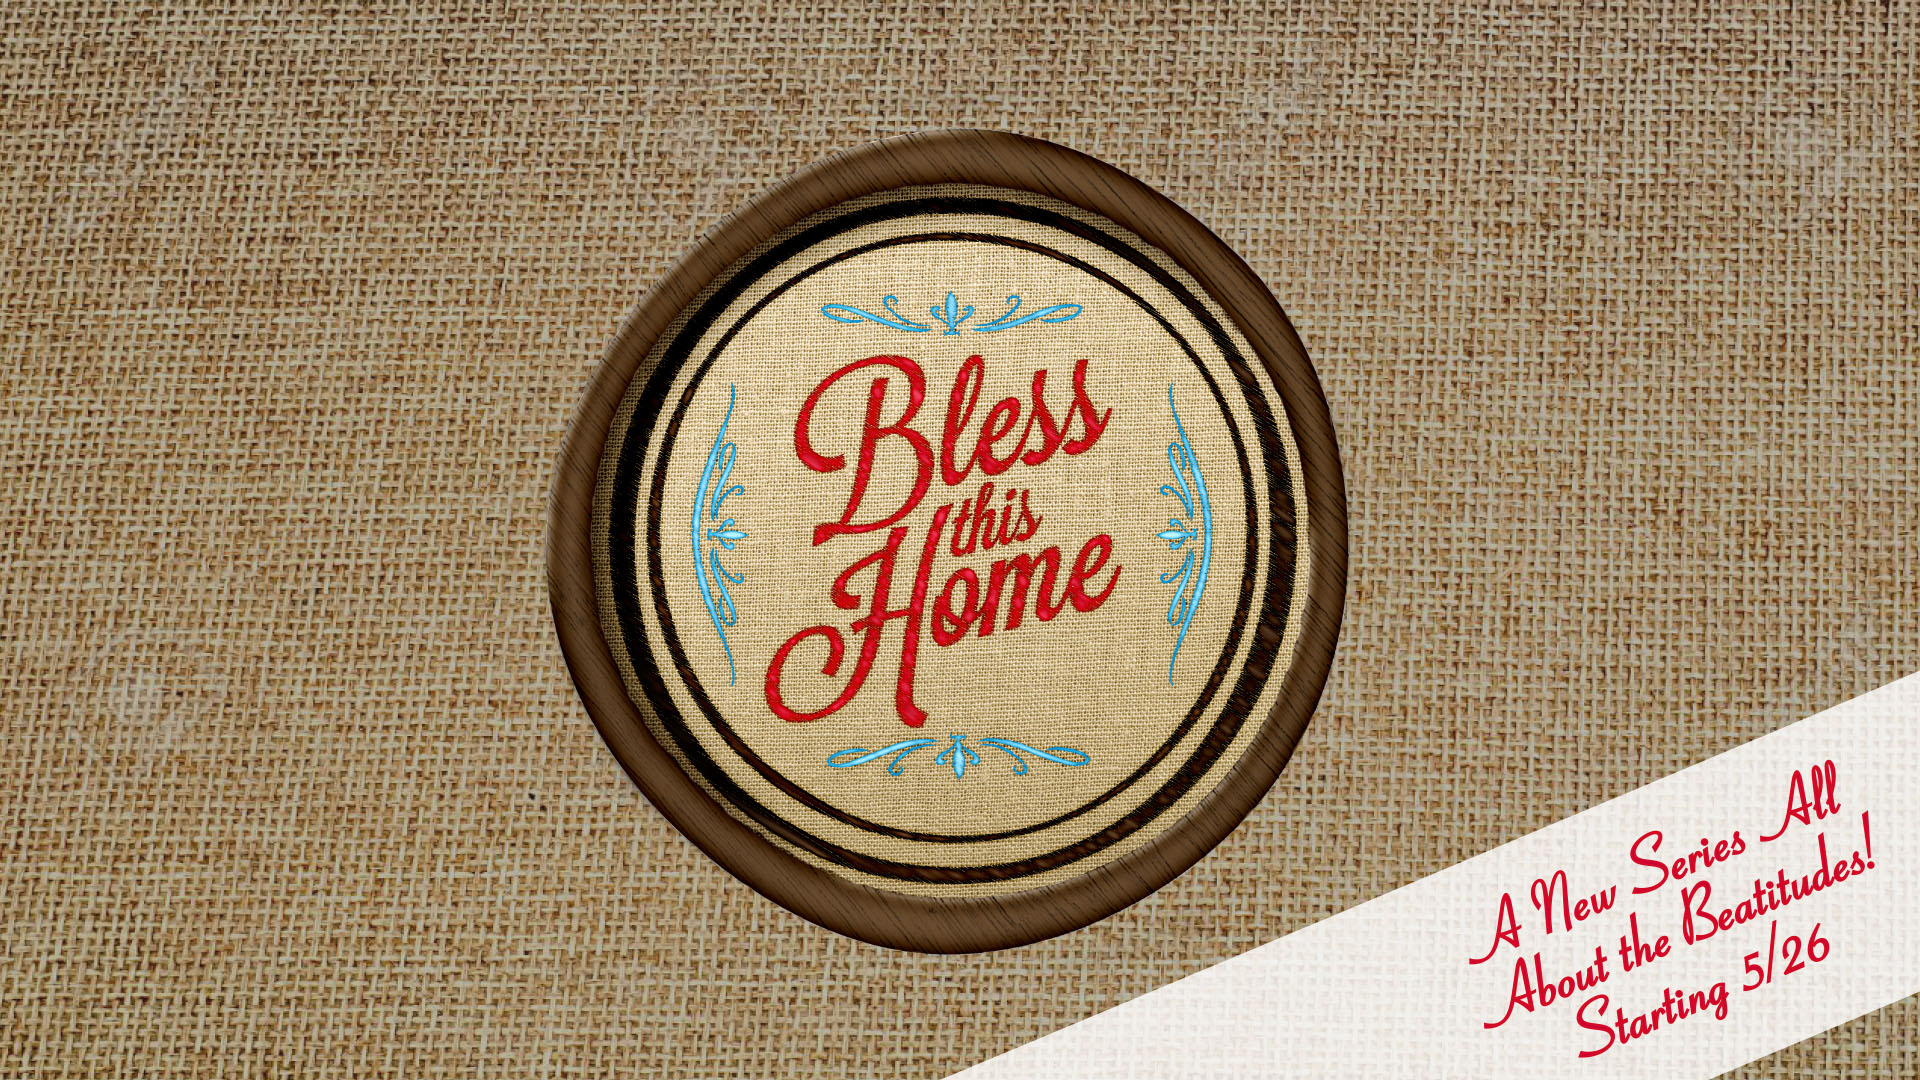 Bless This Home: Reward of Heaven (Plus How to Build Confidence that Heaven is Real)